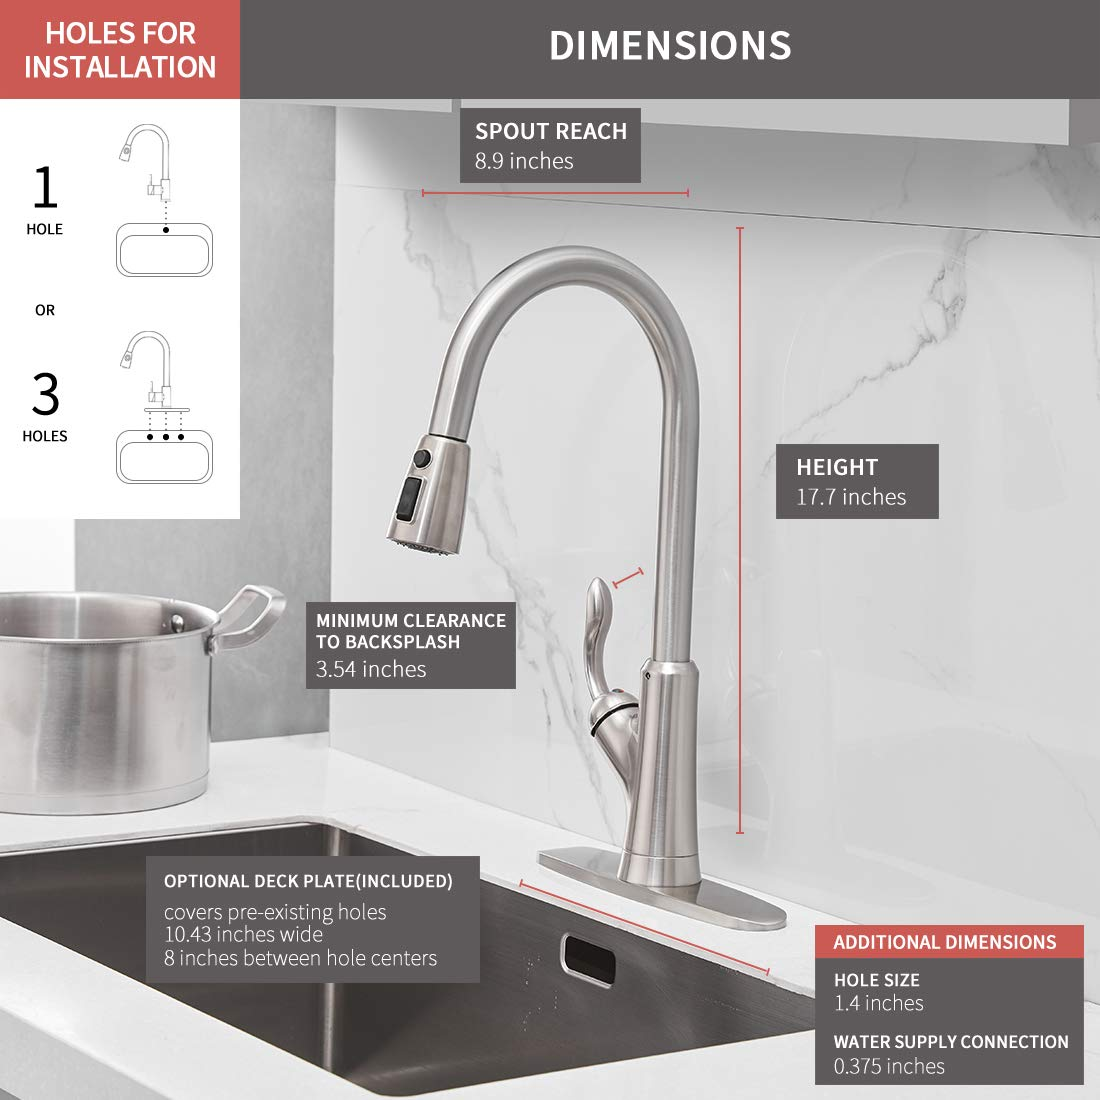 Fisher 4013 Faucet SD 12SS 21R